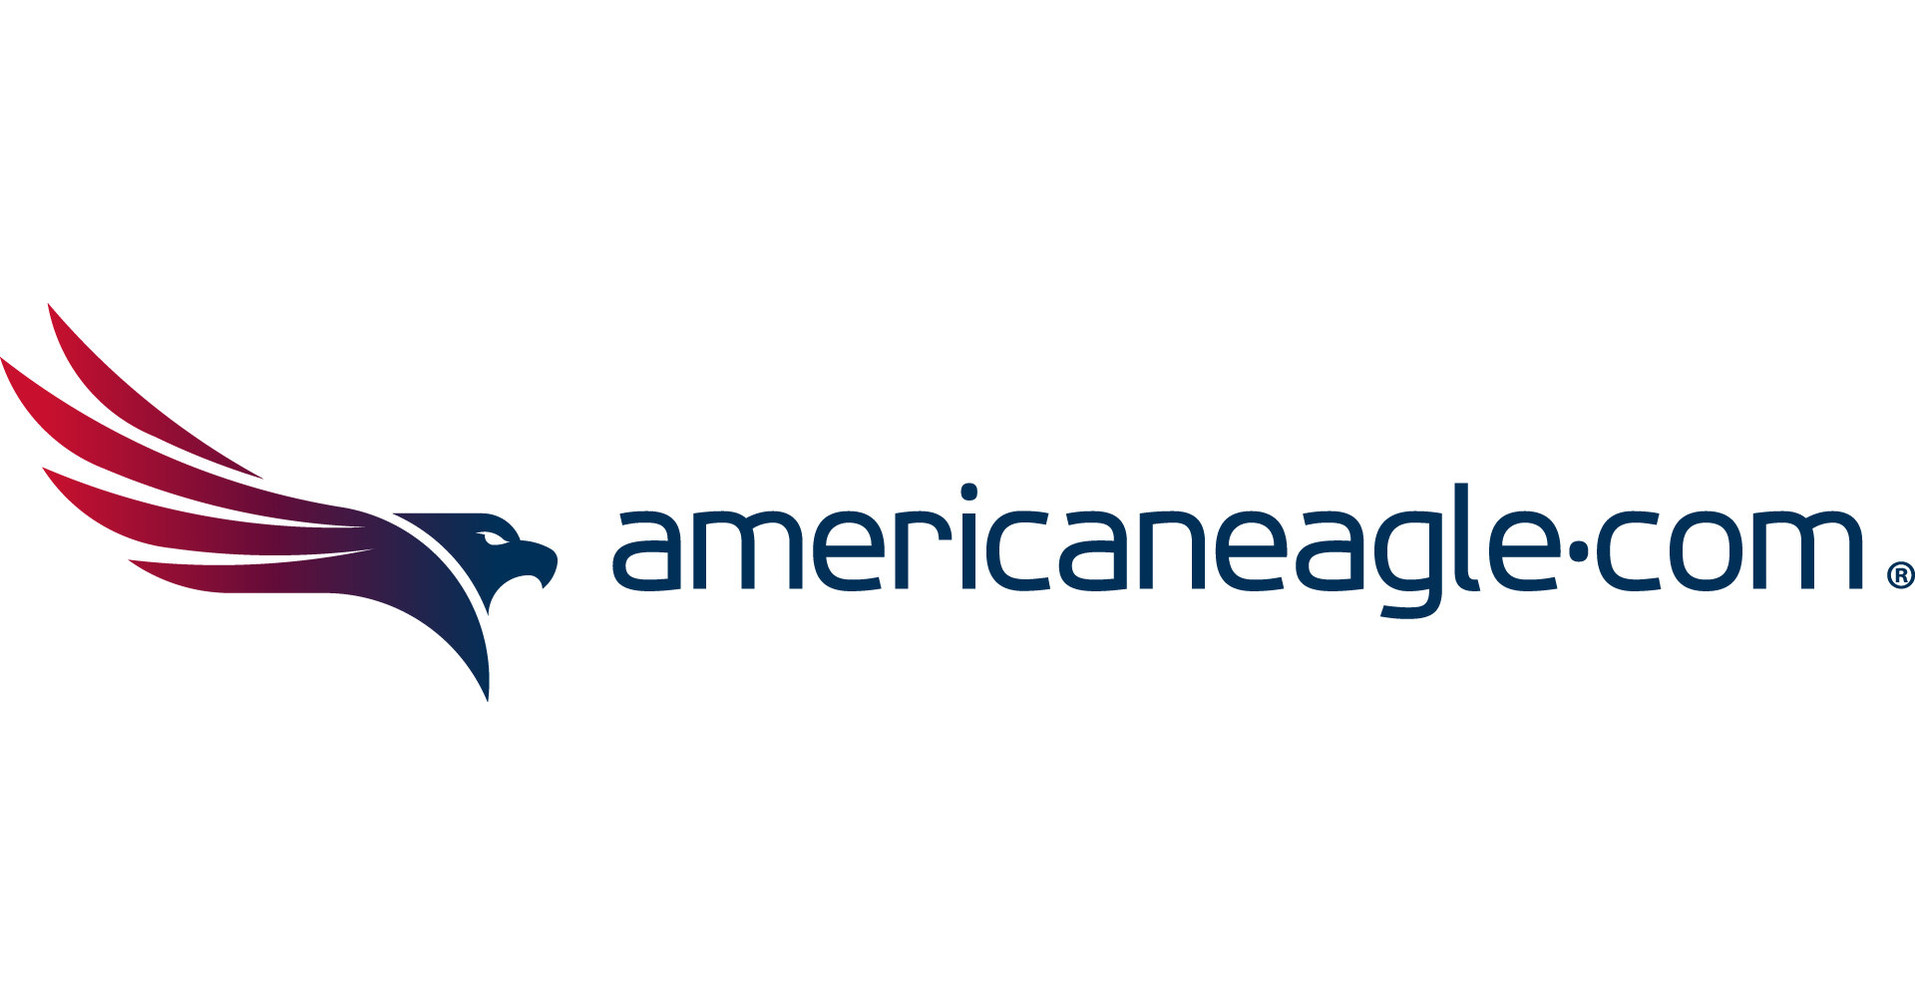 BigCommerce Provides Dedicated Technical Account Manager to Americaneagle.com